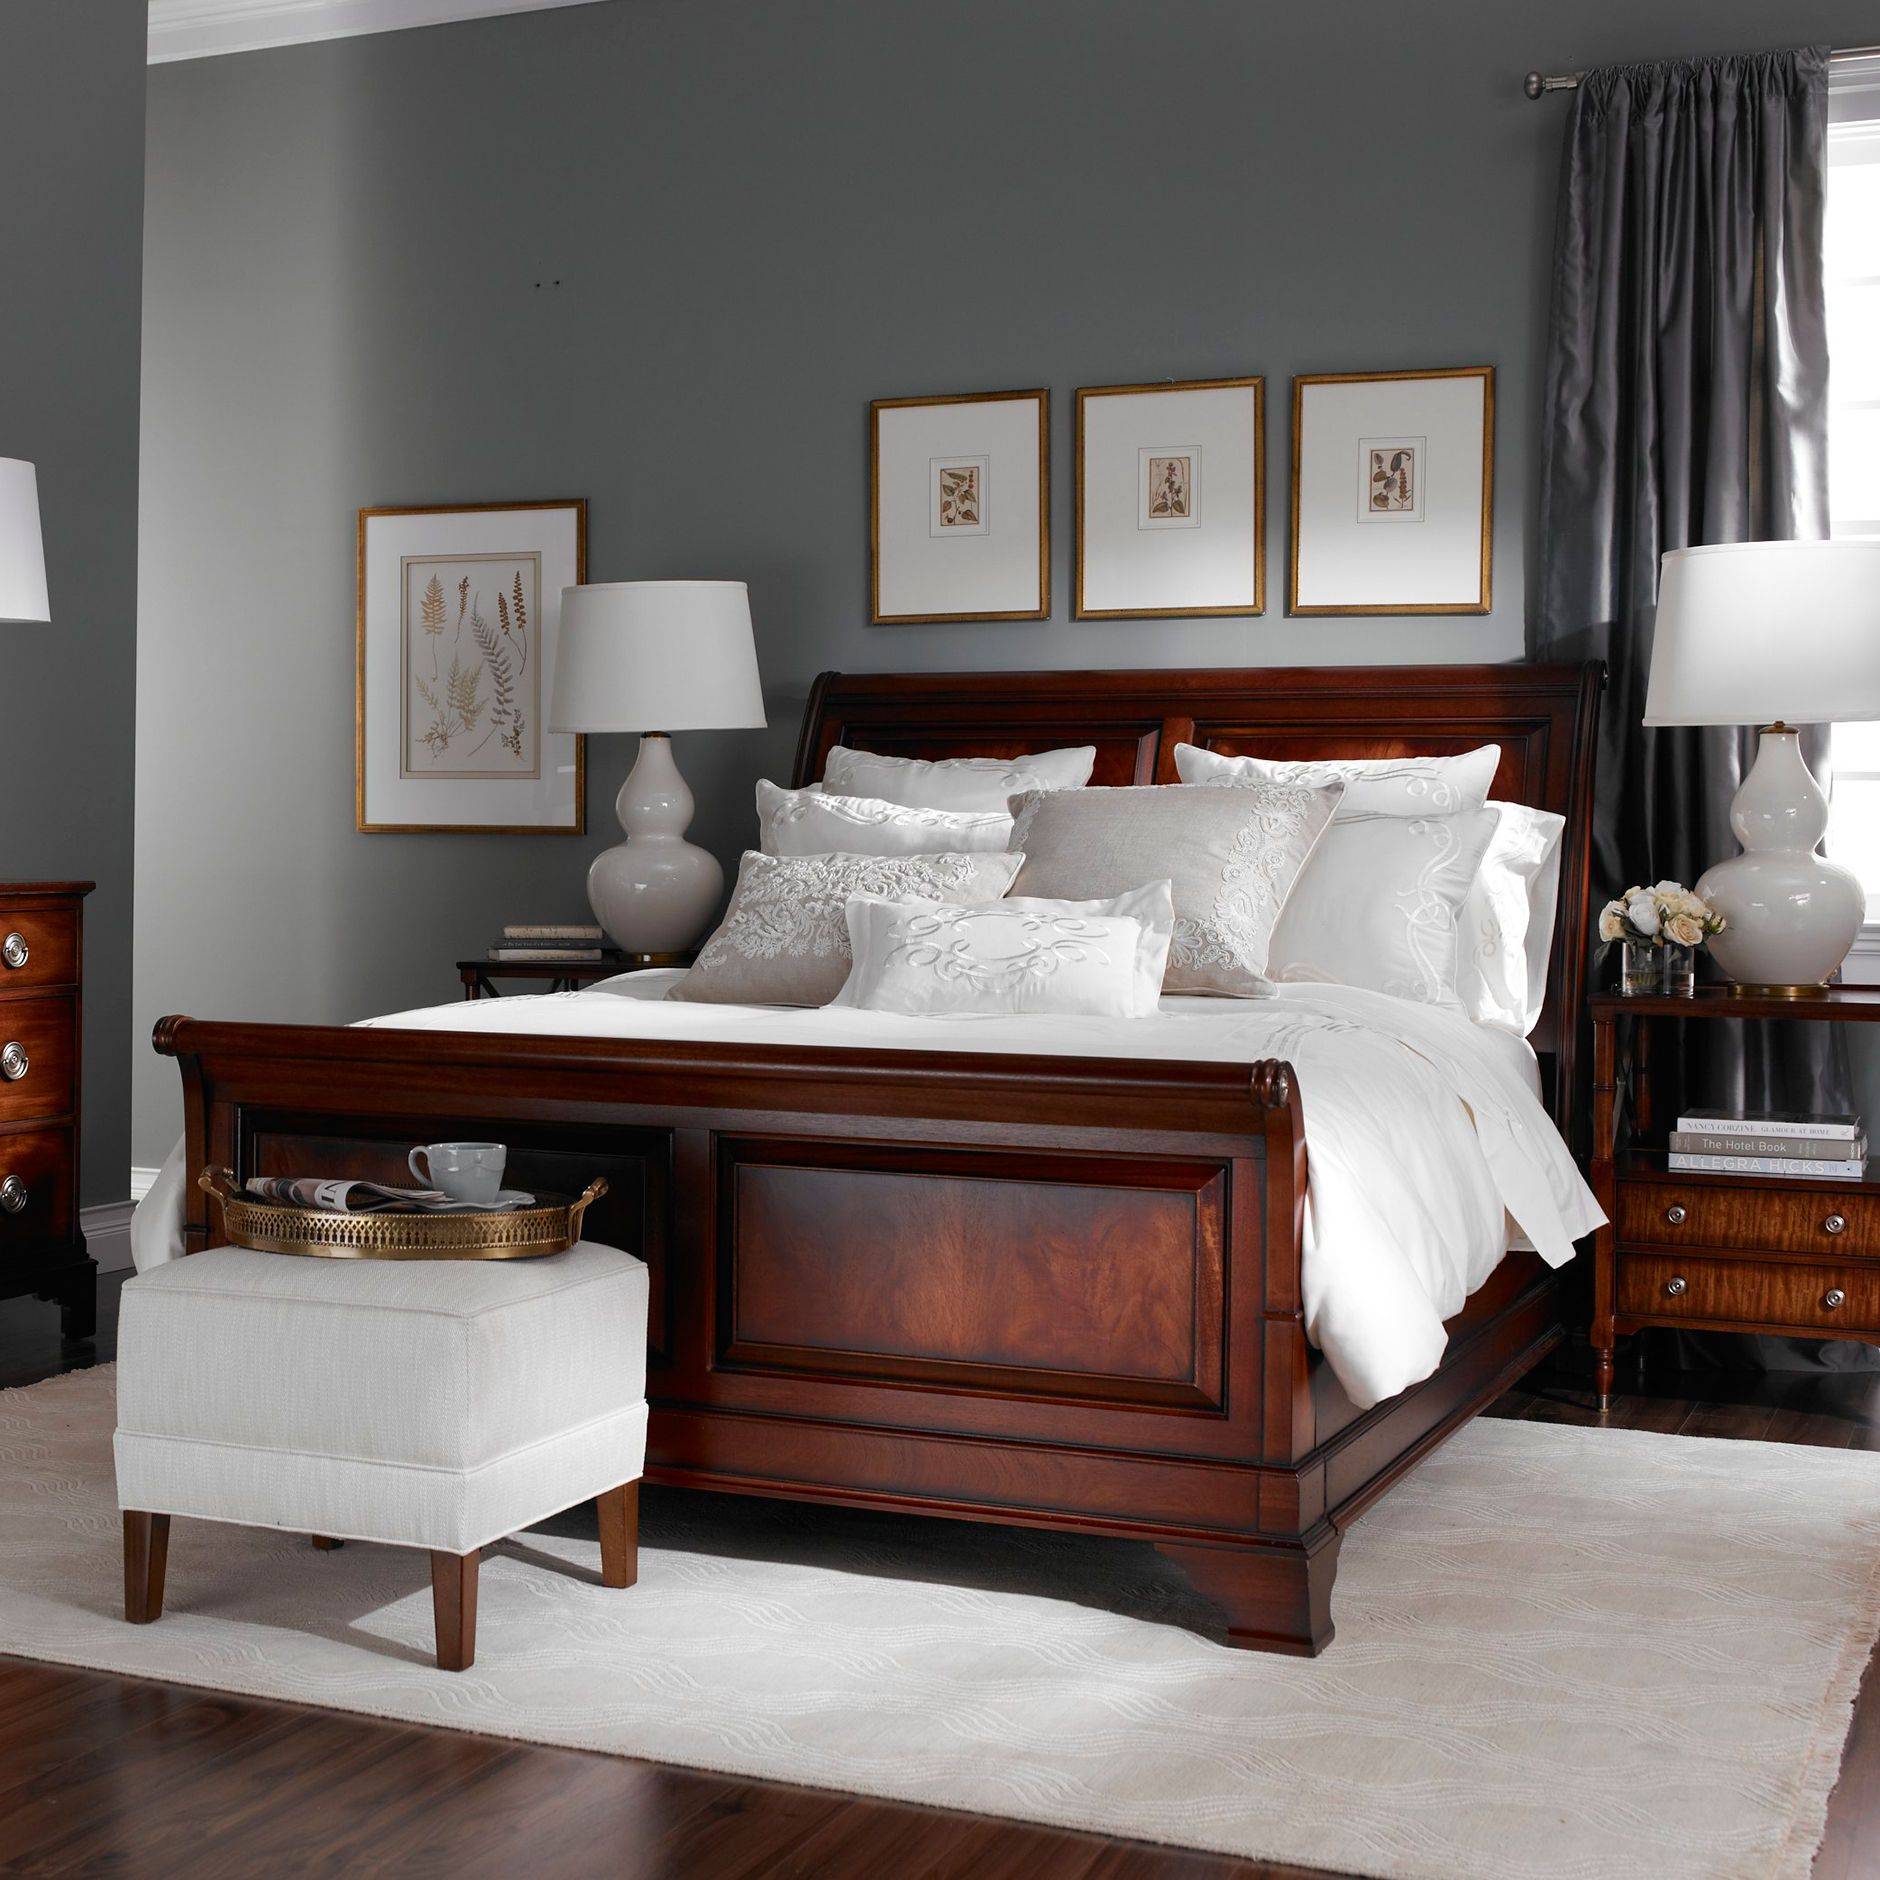 Somerset Bed Ethan Allen Us Brown Furniture Bedroom Master Bedrooms Decor Dark Wood Bedroom Furniture